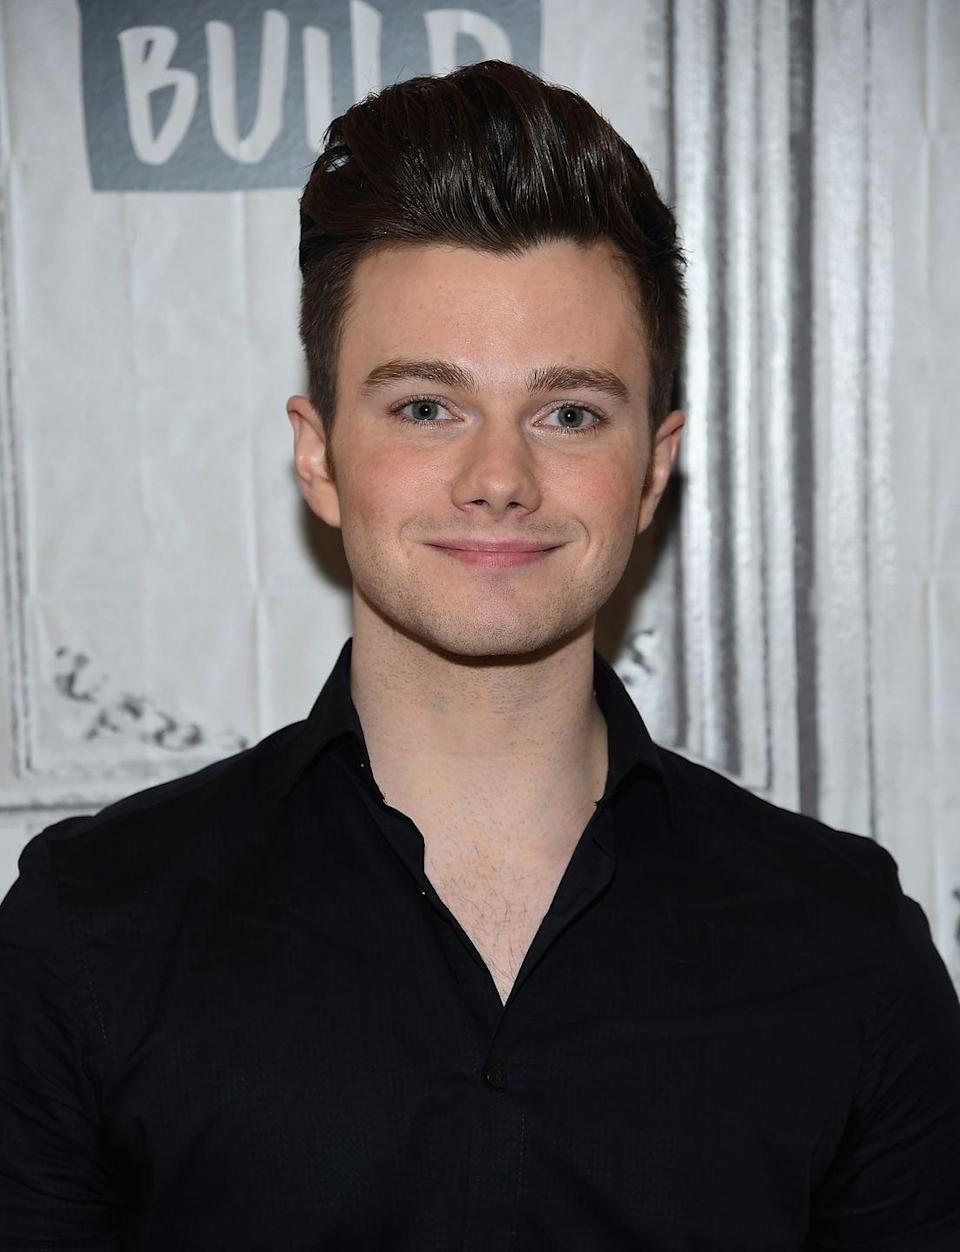 """<p><strong>The role: </strong><a href=""""https://www.digitalspy.com/tv/ustv/a393006/glee-chris-colfer-i-auditioned-to-play-artie/"""" rel=""""nofollow noopener"""" target=""""_blank"""" data-ylk=""""slk:Artie Abrams"""" class=""""link rapid-noclick-resp"""">Artie Abrams</a> in <em>Glee</em></p><p><strong>Who *actually* played it:</strong> Kevin McHale</p><p><strong>The role they played instead: </strong>Kurt Hummel</p><p>McHale originally auditioned for Artie and was turned down. But creator Ryan Murphy liked Colfer so much that he actually invented the character of Kurt specifically for him. </p>"""